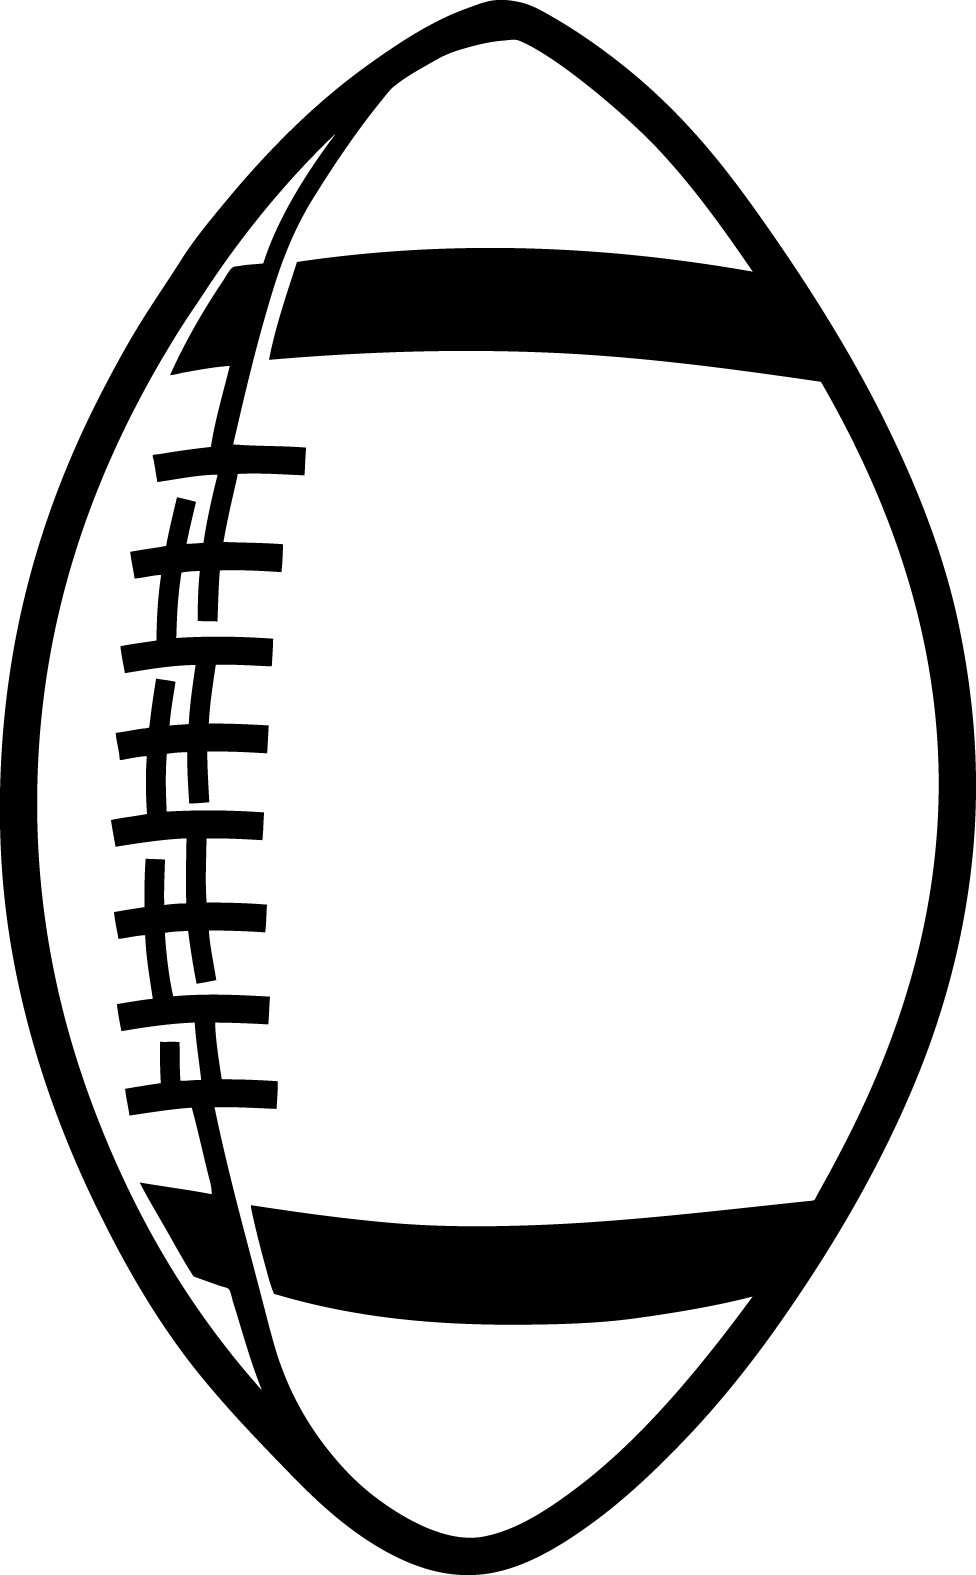 976x1575 Football Clipart Free Images